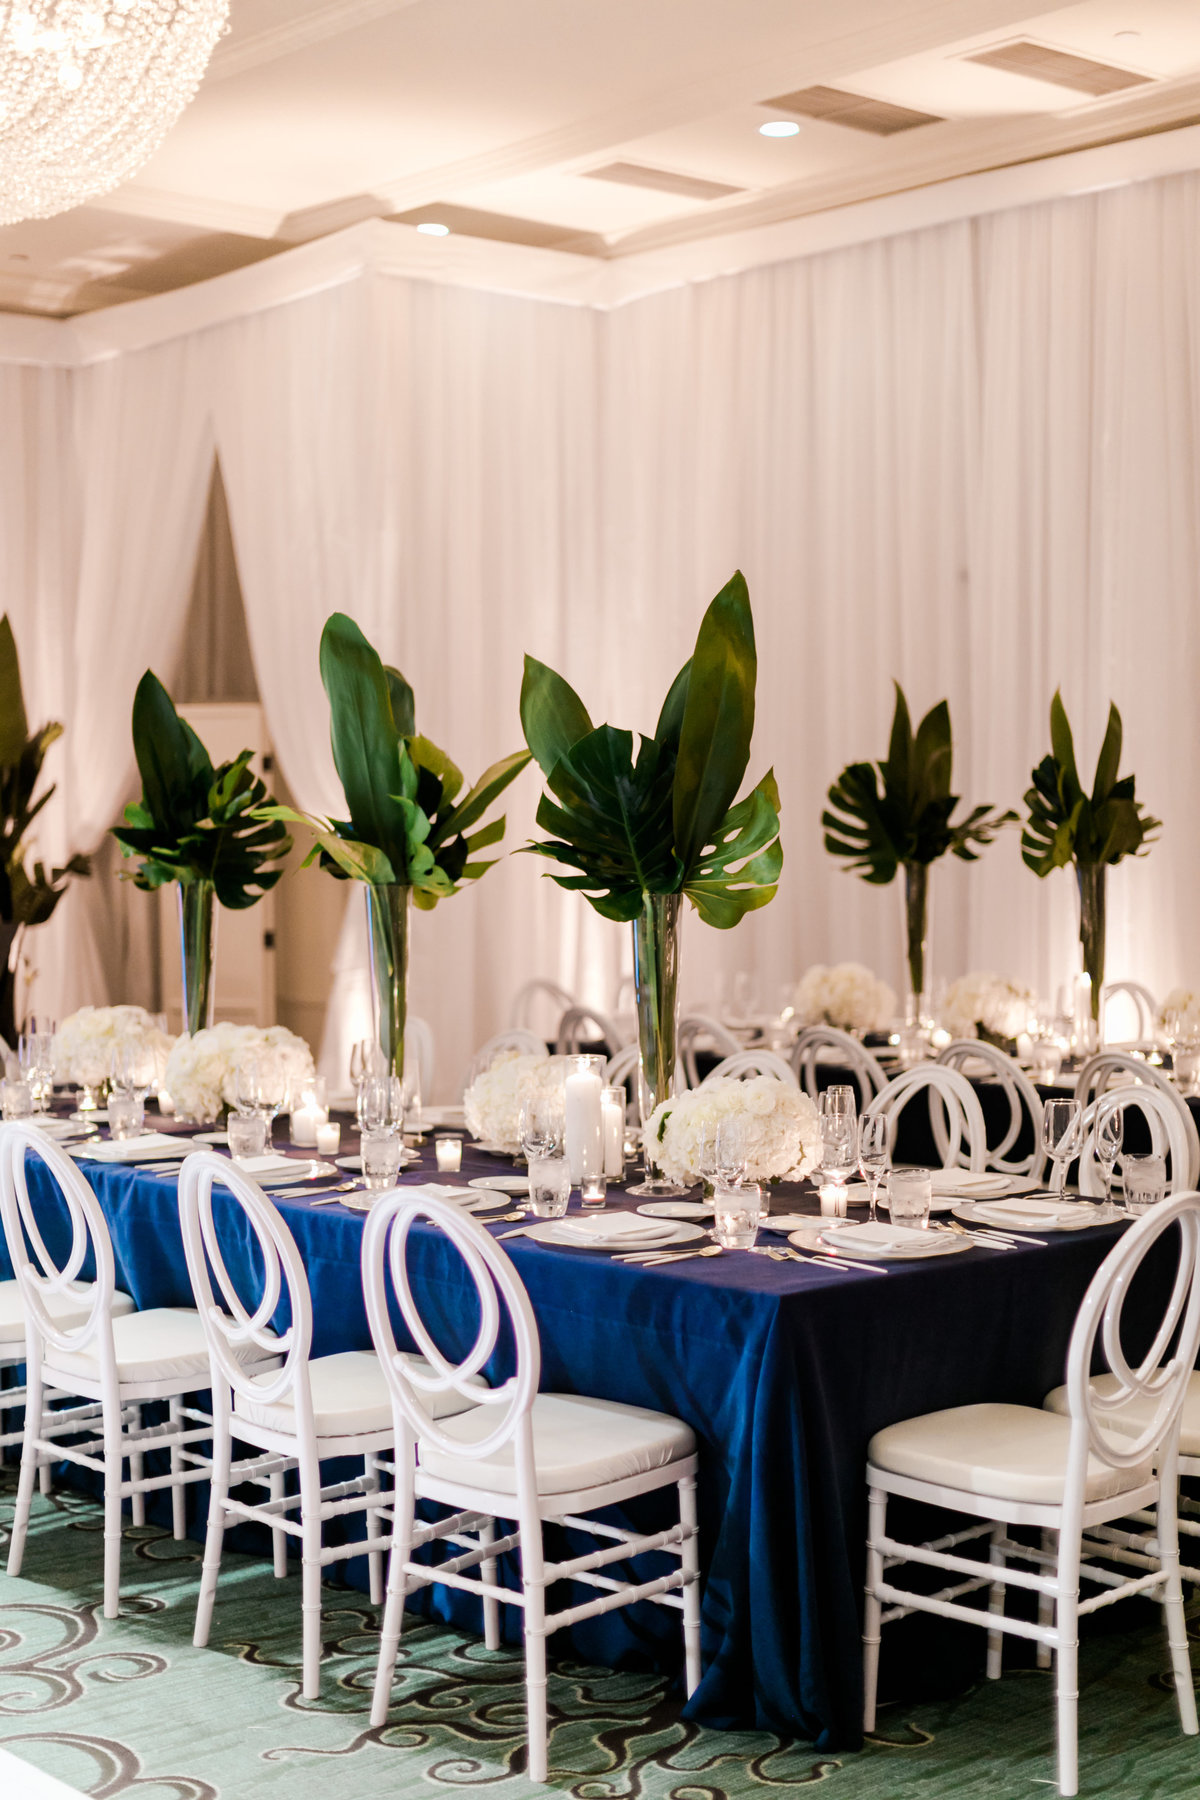 Tropical_Modern_Fairmont_Santa_Monica_Navy_Pink_Wedding_Valorie_Darling_Photography - 116 of 146